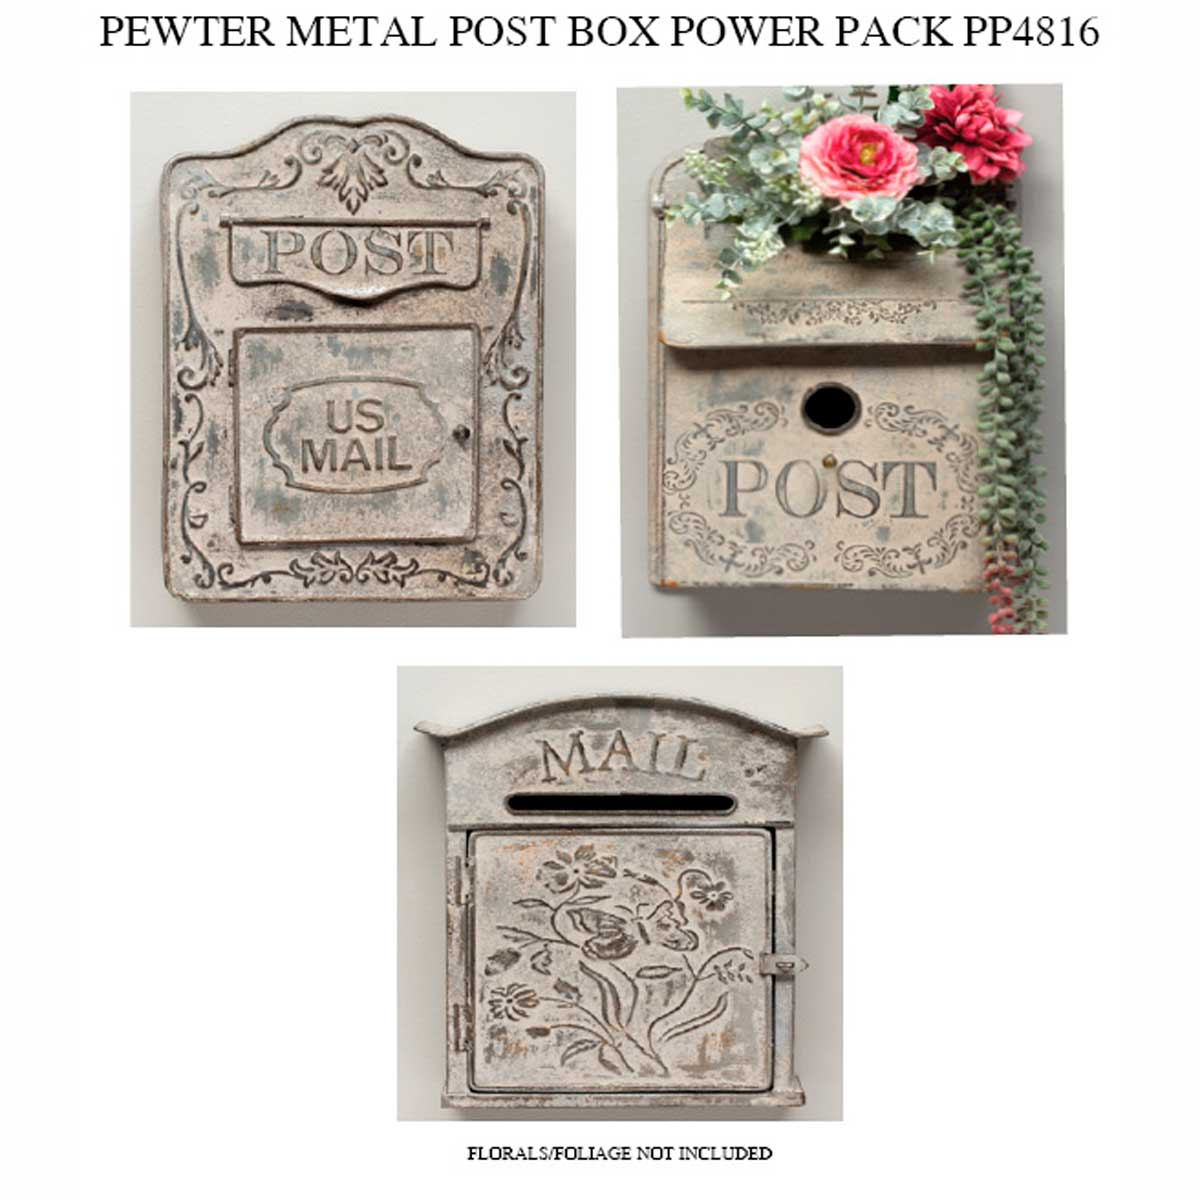 PEWTER POSTBOX POWER PACK 3 UNITS